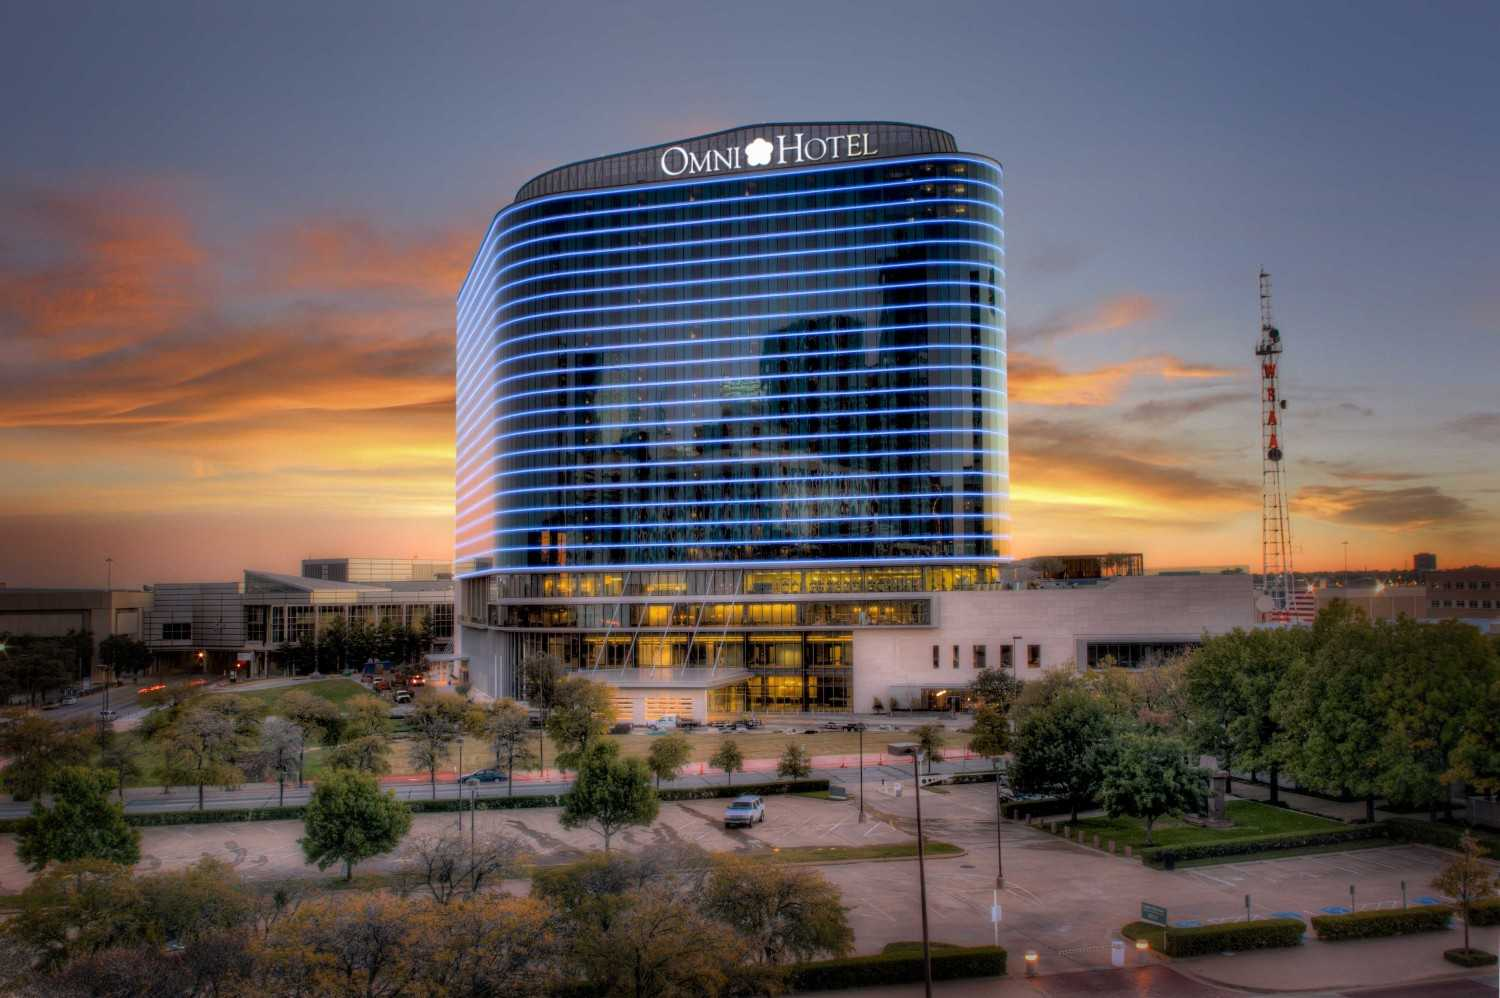 5G Studio Collaborative Omni Dallas Convention Center Hotel Dallas, Texas Dallas, Texas Front View Rendering  14957